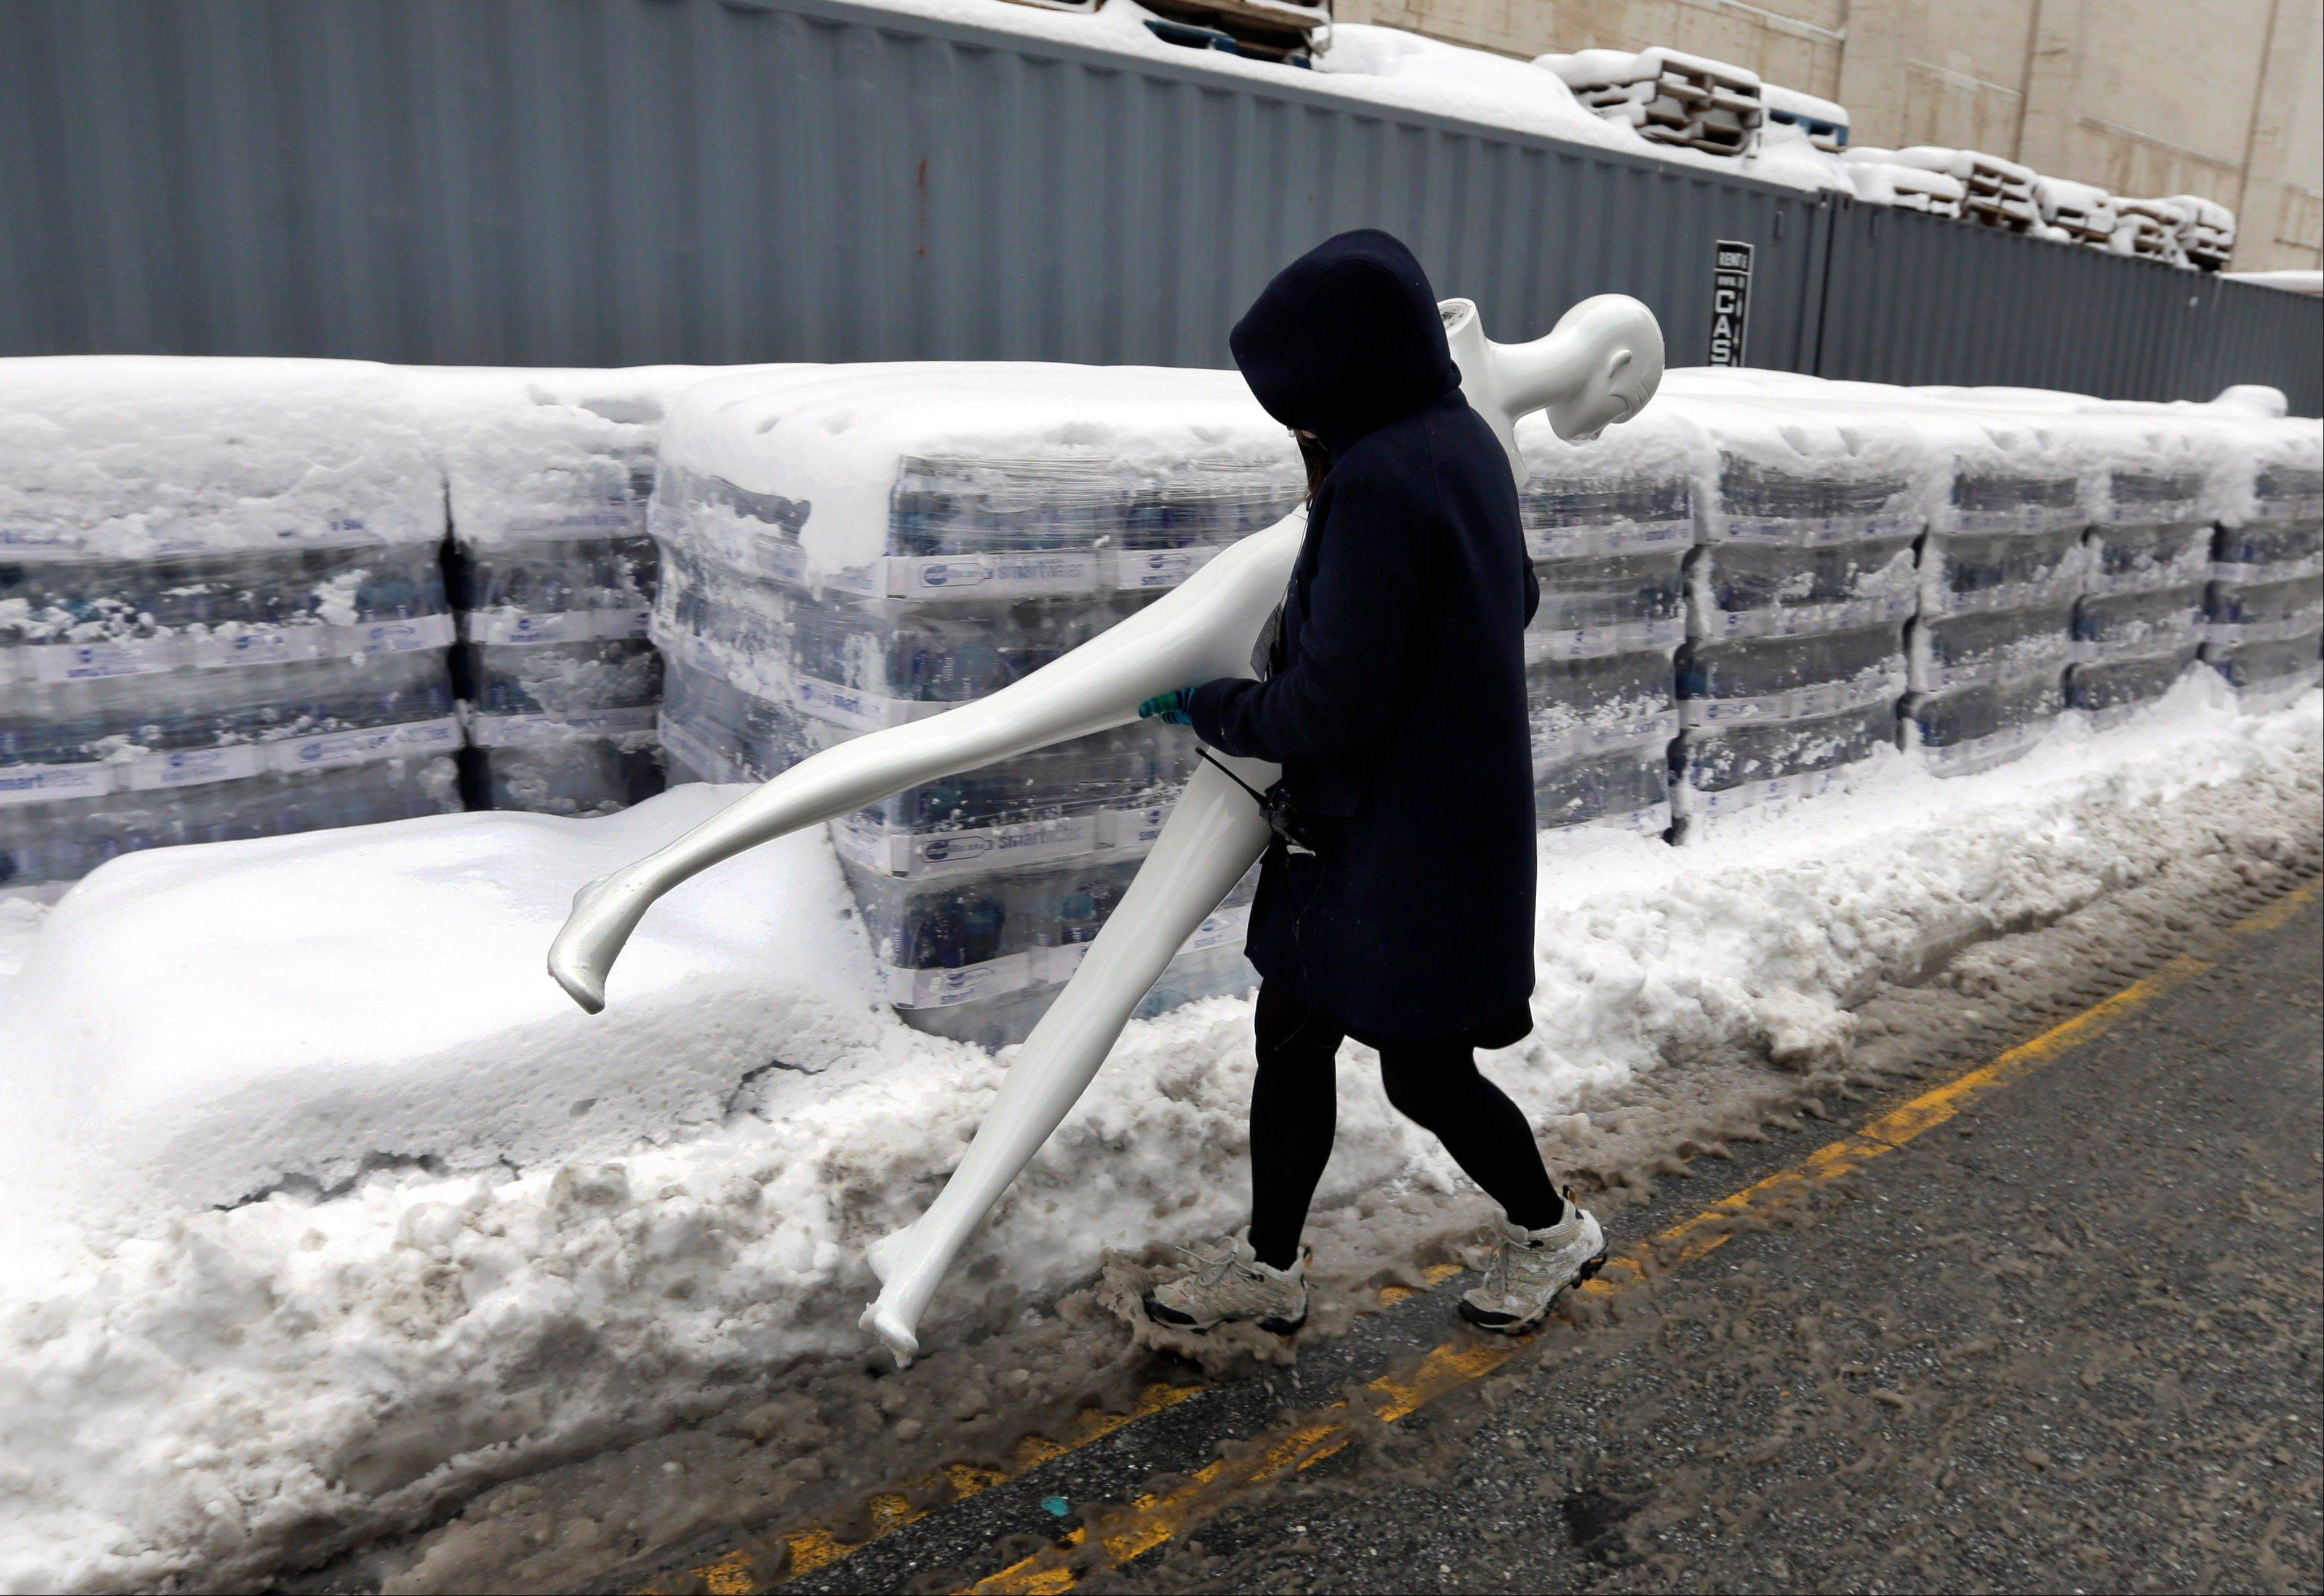 Shovels, skis or a wedding: tales from a snowstorm